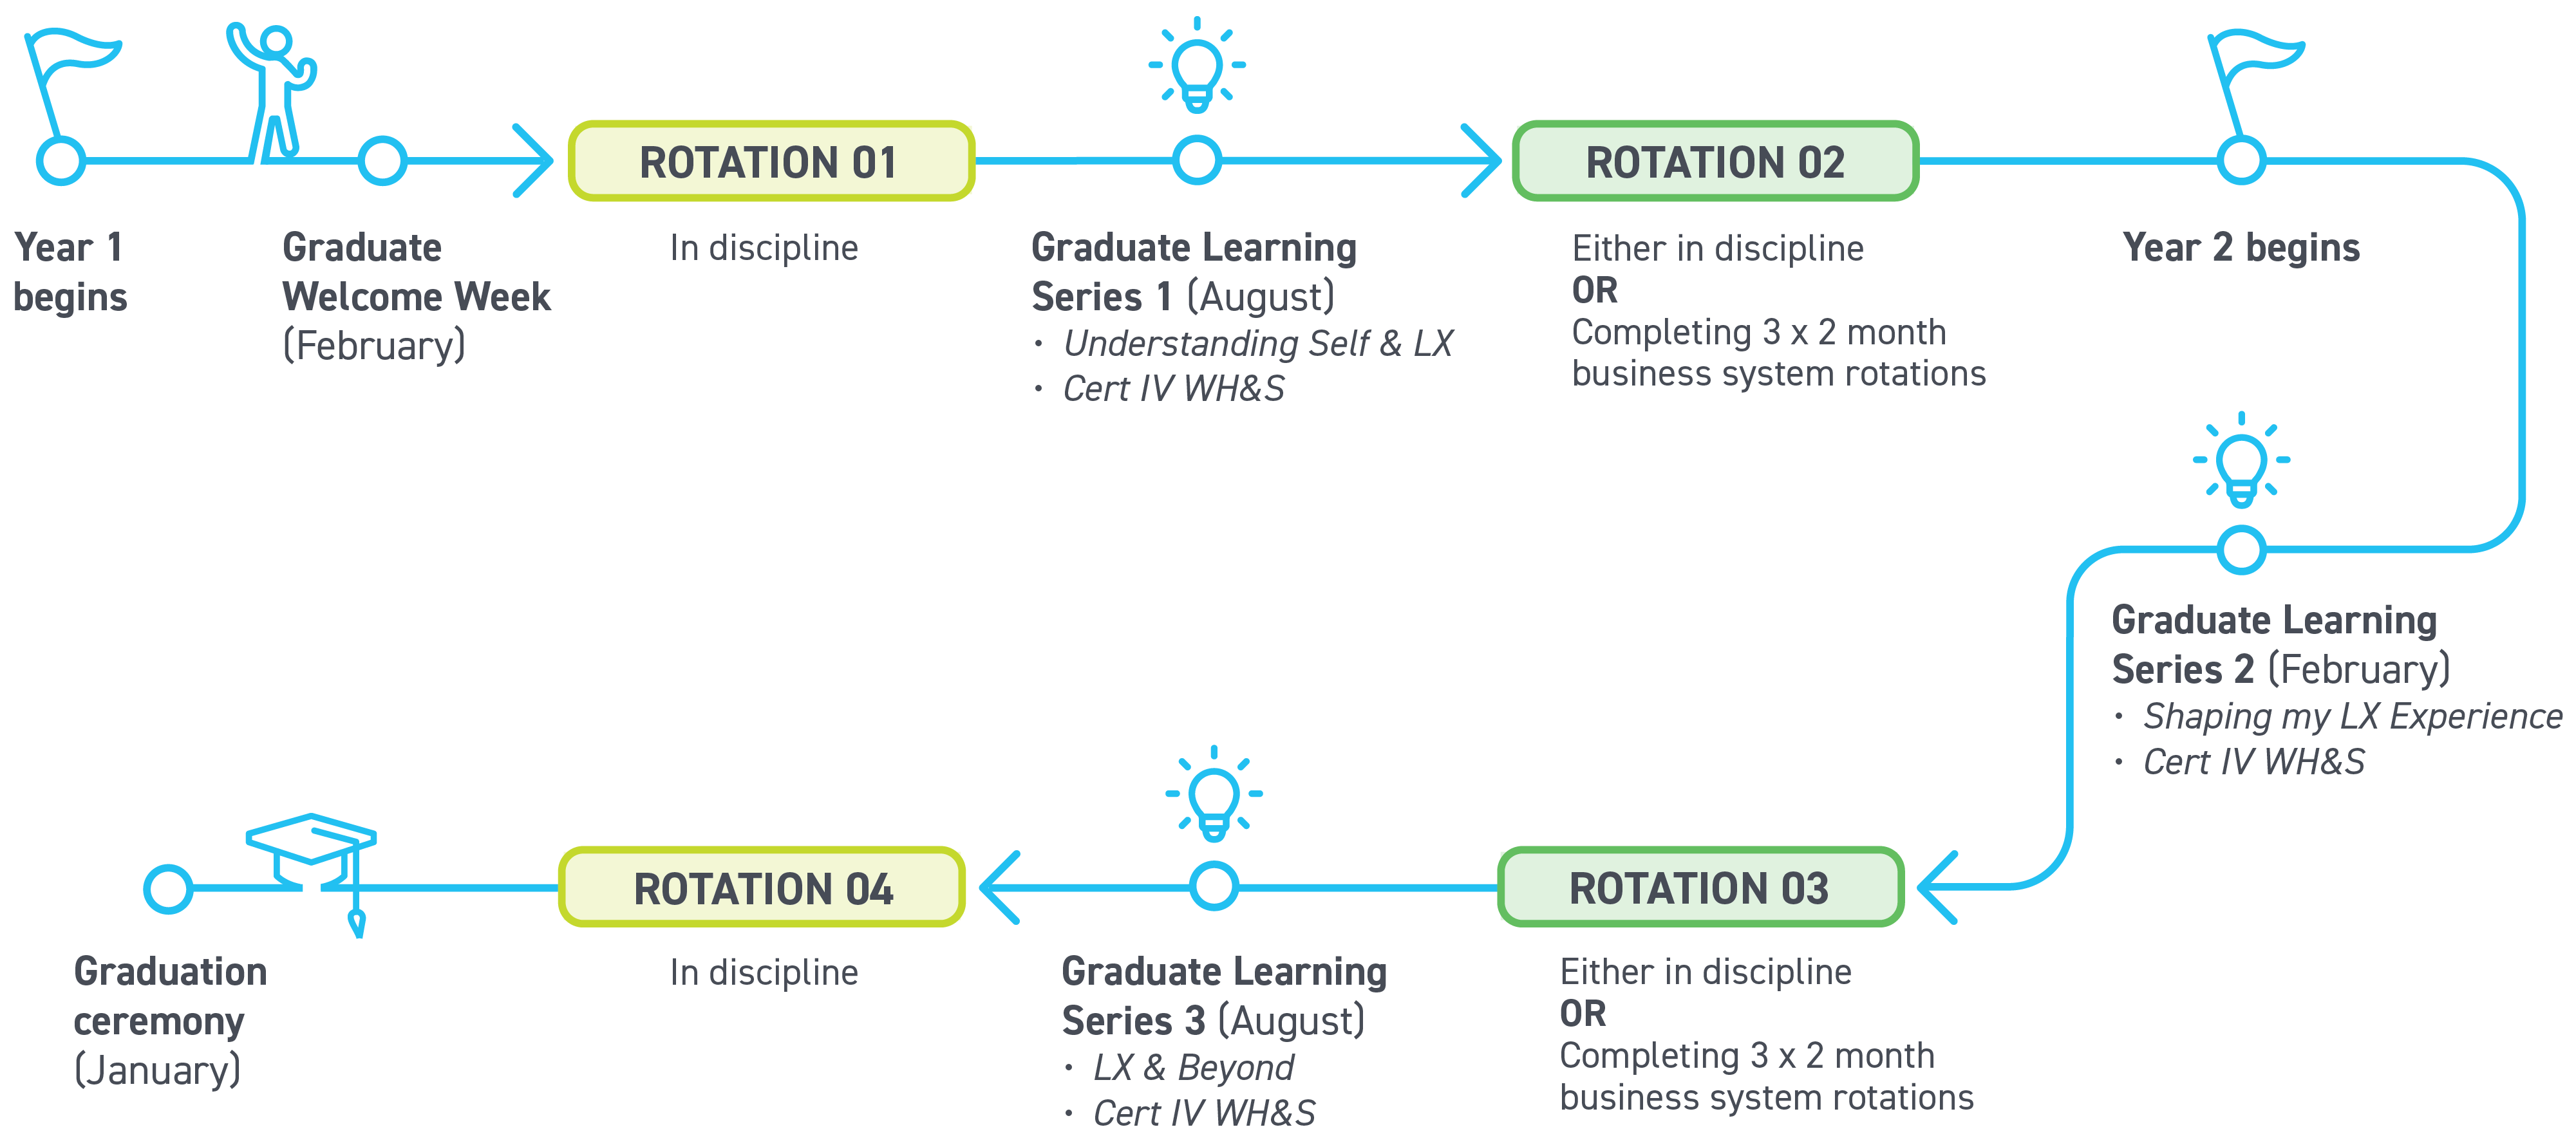 Map of the graduate journey. Year 1: Graduate welcome week (February), rotation 1 (in discipline), graduate learning series (August), including Understanding self and LX, and Certificate IV in workplace health and safety, rotation 2 (either in discipline or completing 3 x 2-month business system rotations). Year 2: Graduate Learning Series (February), including Shaping my LX Experience and Certificate IV in workplace health and safety, rotation 3 (either in discipline or completing 3 x 2-month business system rotations, Graduate Learning Series (August), including LX and beyond and Certificate IV in workplace health and safety), rotation 4 (in discipline), graduation ceremony (January).